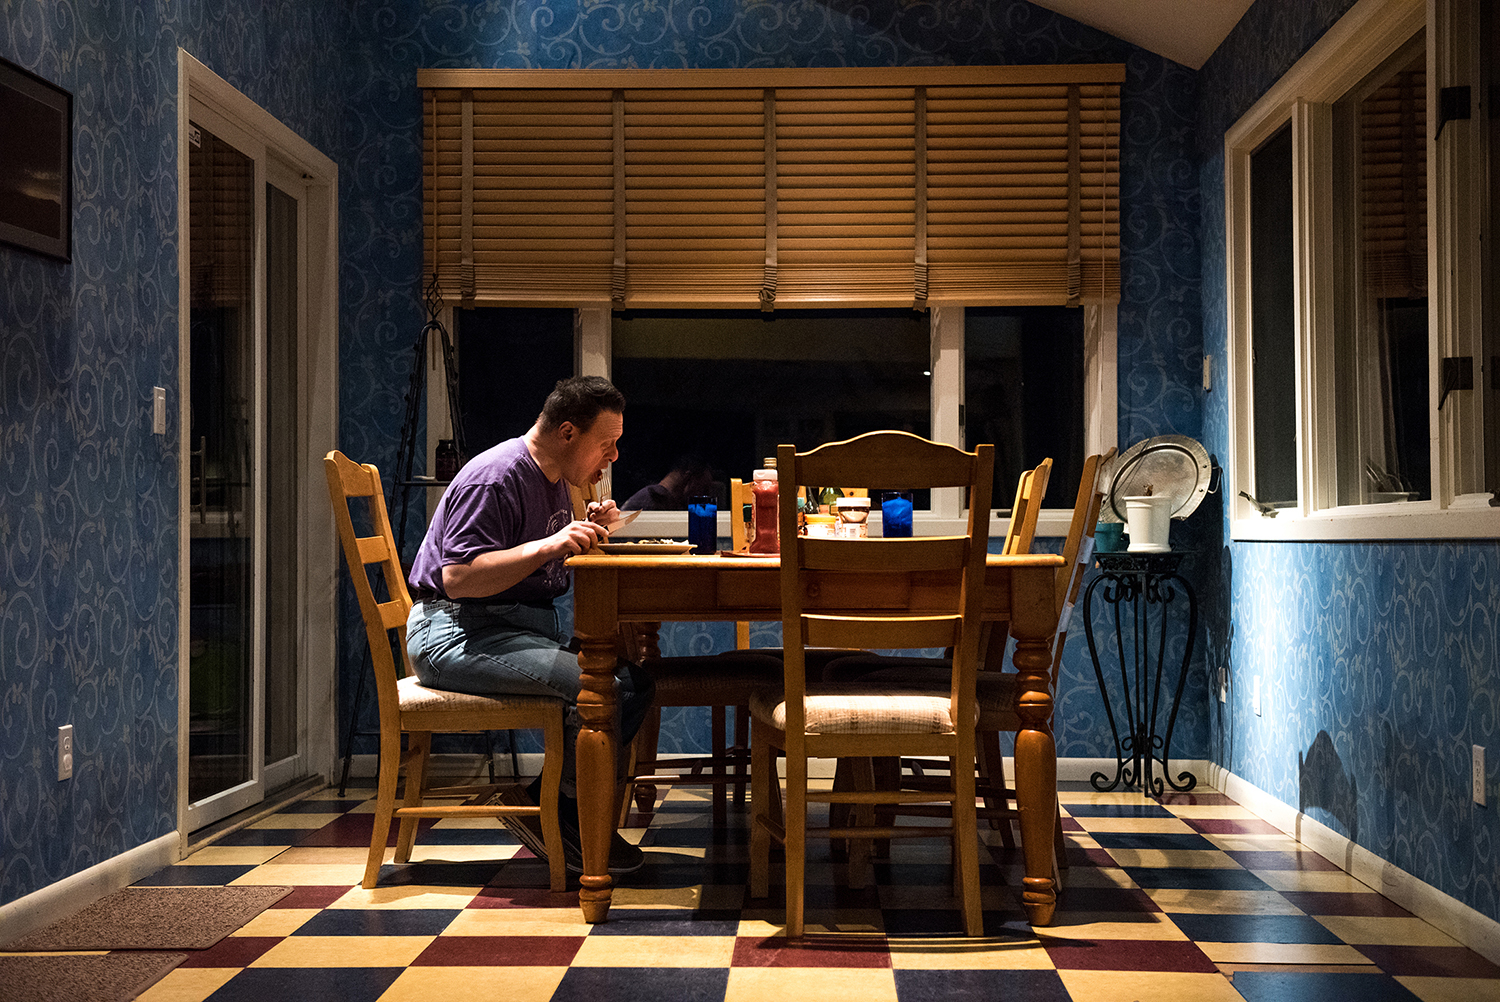 A photo of a man eating at a kitchen table.